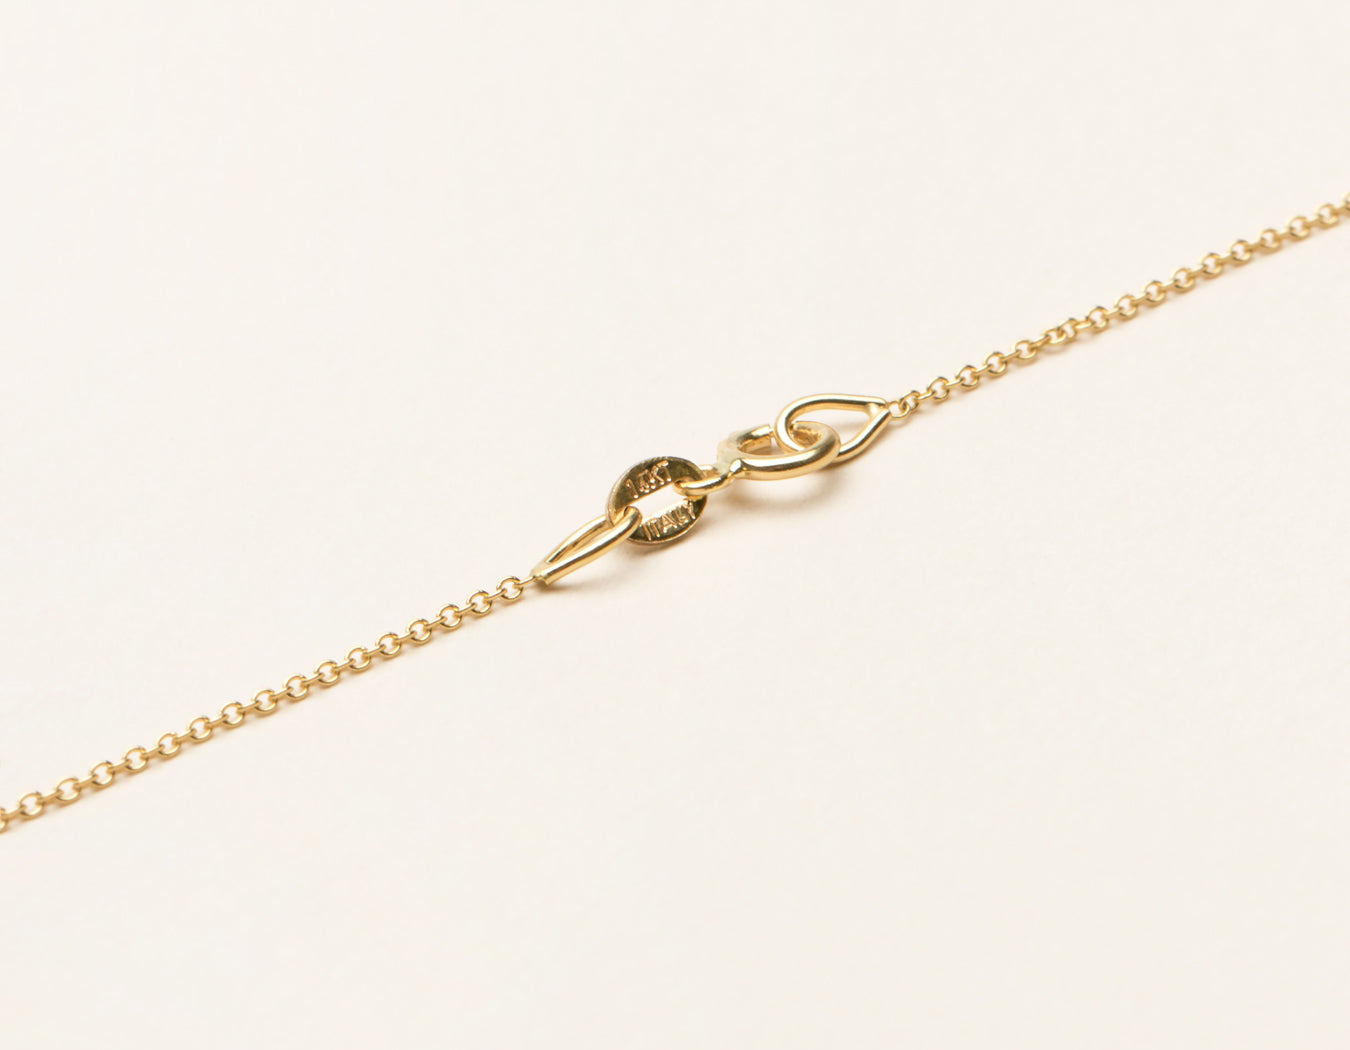 Vrai and Oro Thick Oval Link Chain 14k Solid yellow gold